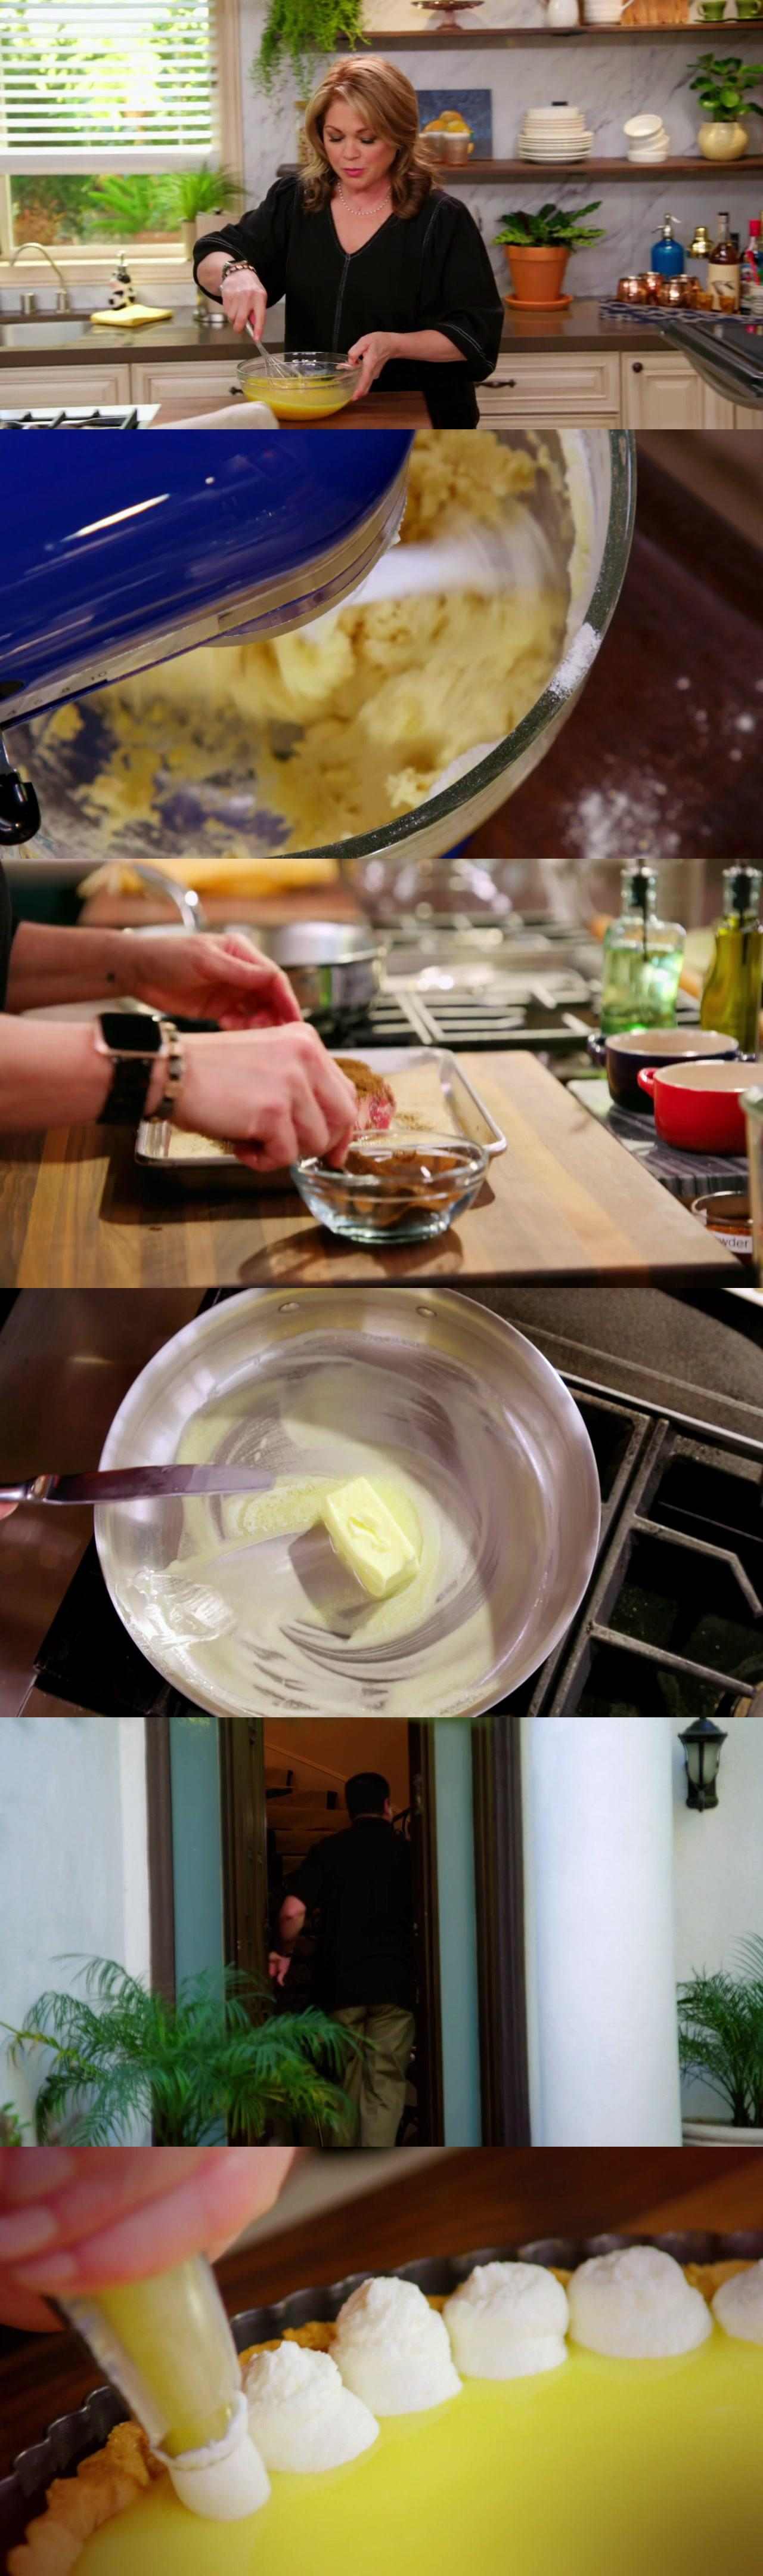 Valeries Home Cooking S09E12 Cooks in The House 720p WEB H264-APRiCiTY